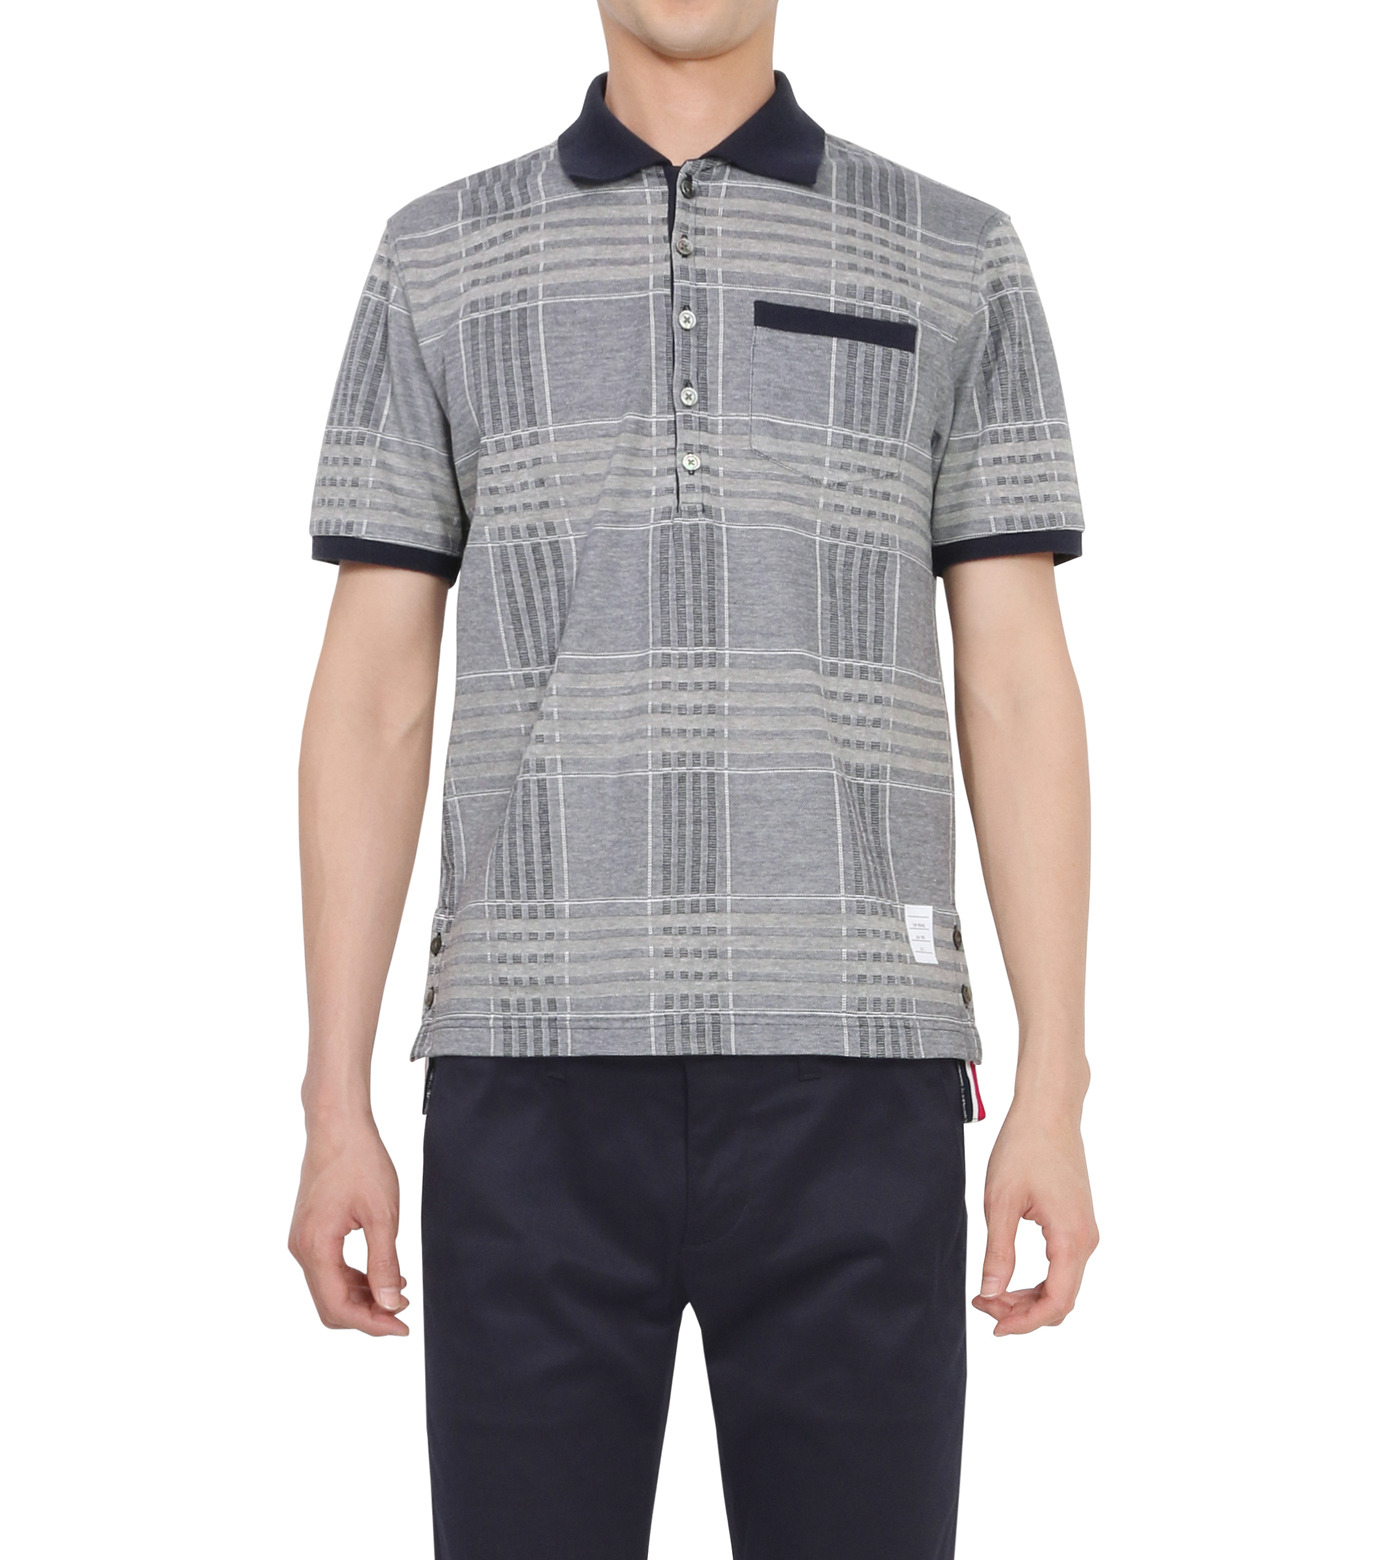 Thom Browne(トムブラウン)のCheckpolo-NAVY(カットソー/cut and sewn)-A0163C10070-93 拡大詳細画像1